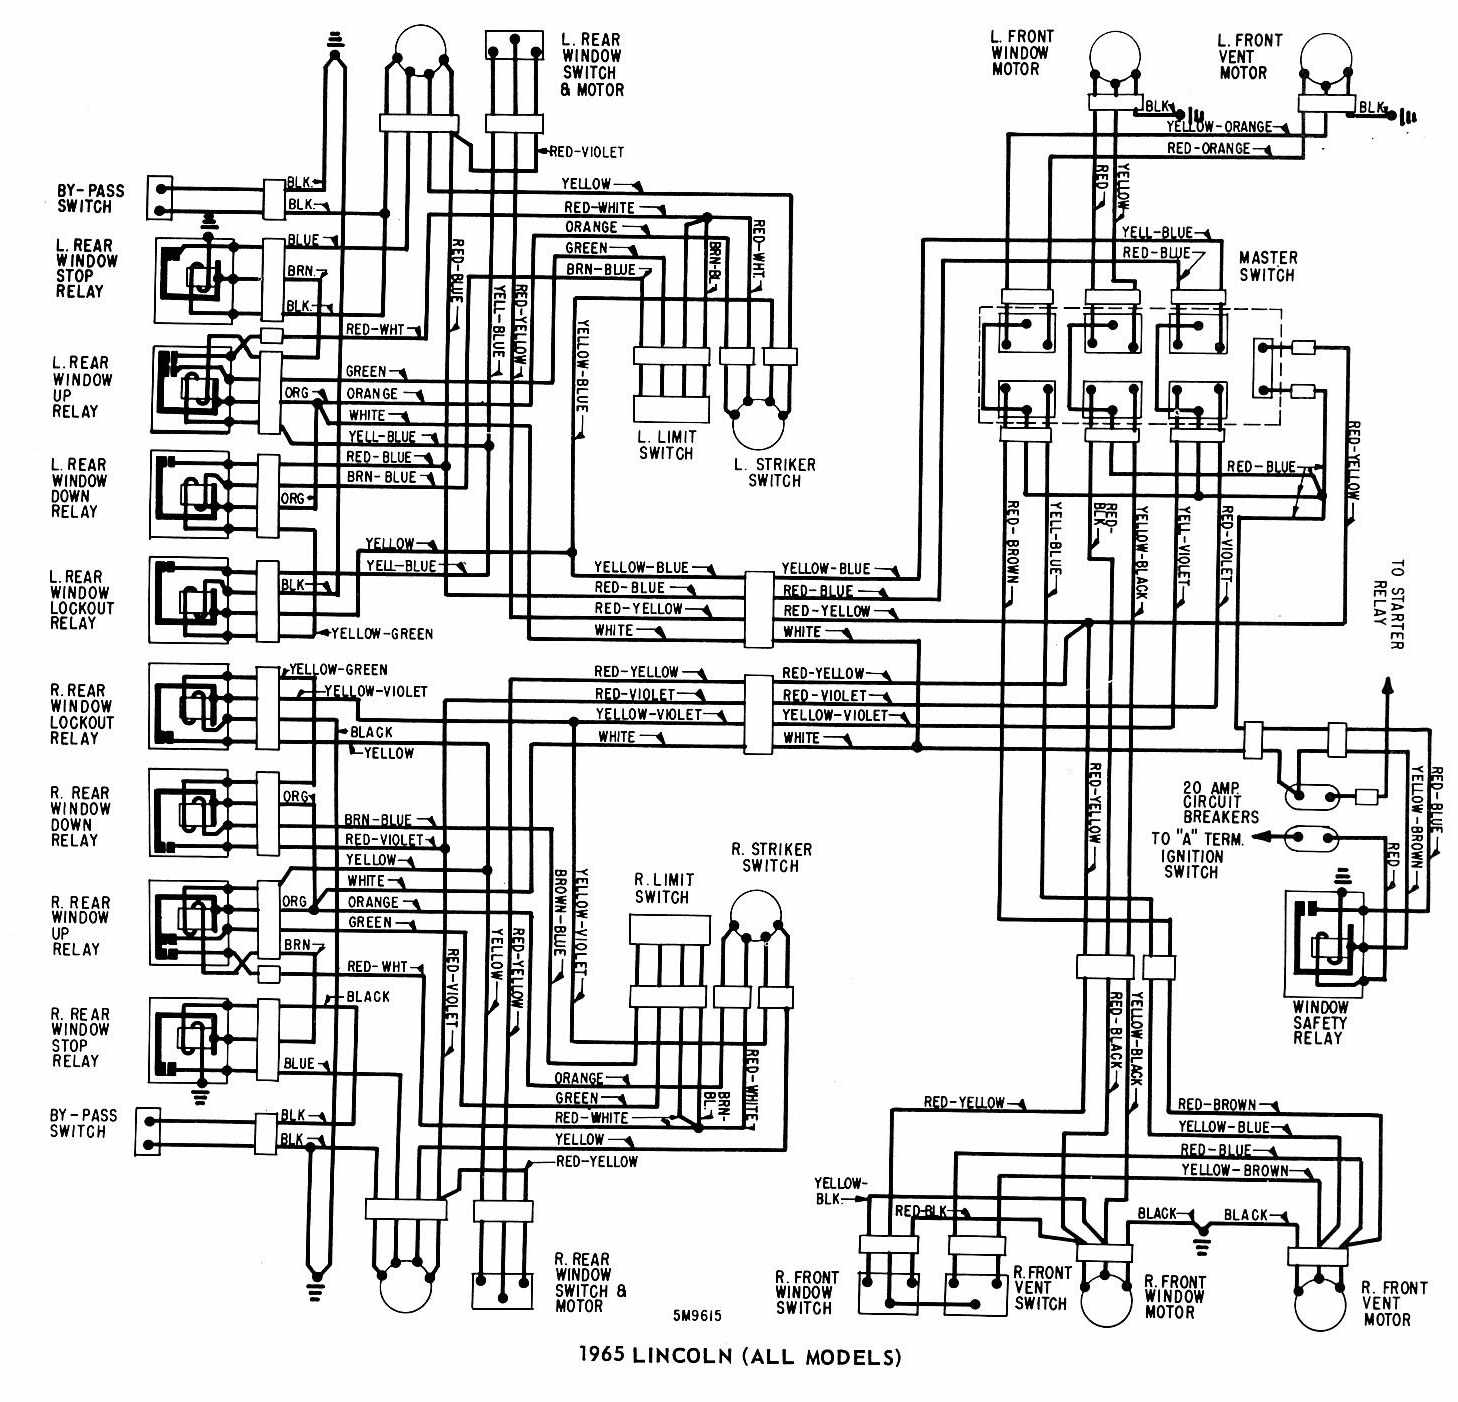 small resolution of 1965 lincoln continental wiring diagram wiring diagram third level lincoln mark iii wiring diagram 1970 lincoln